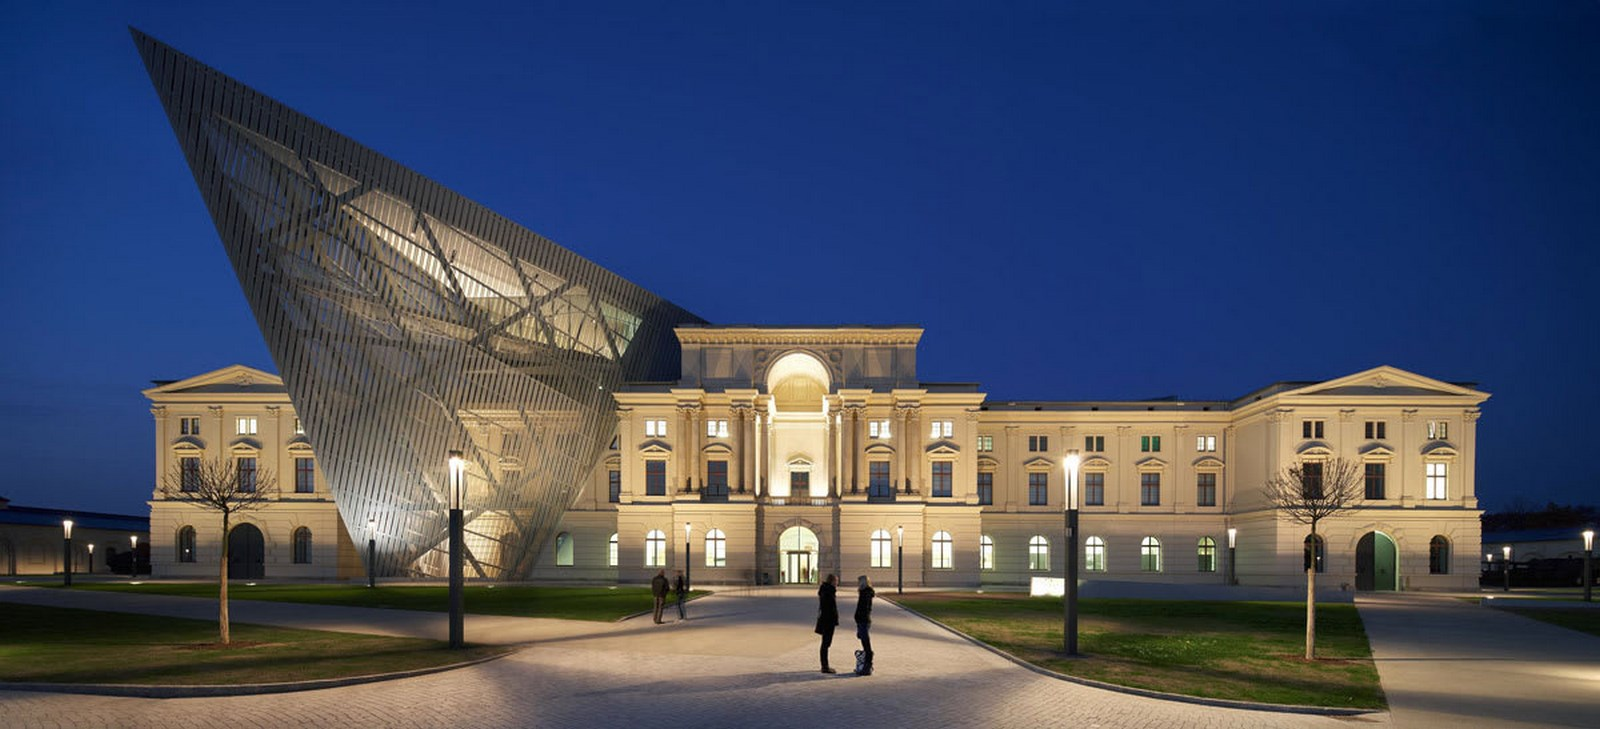 15 Iconic Projects by Daniel Libeskind Every Architect must visit! - Museum of Military History